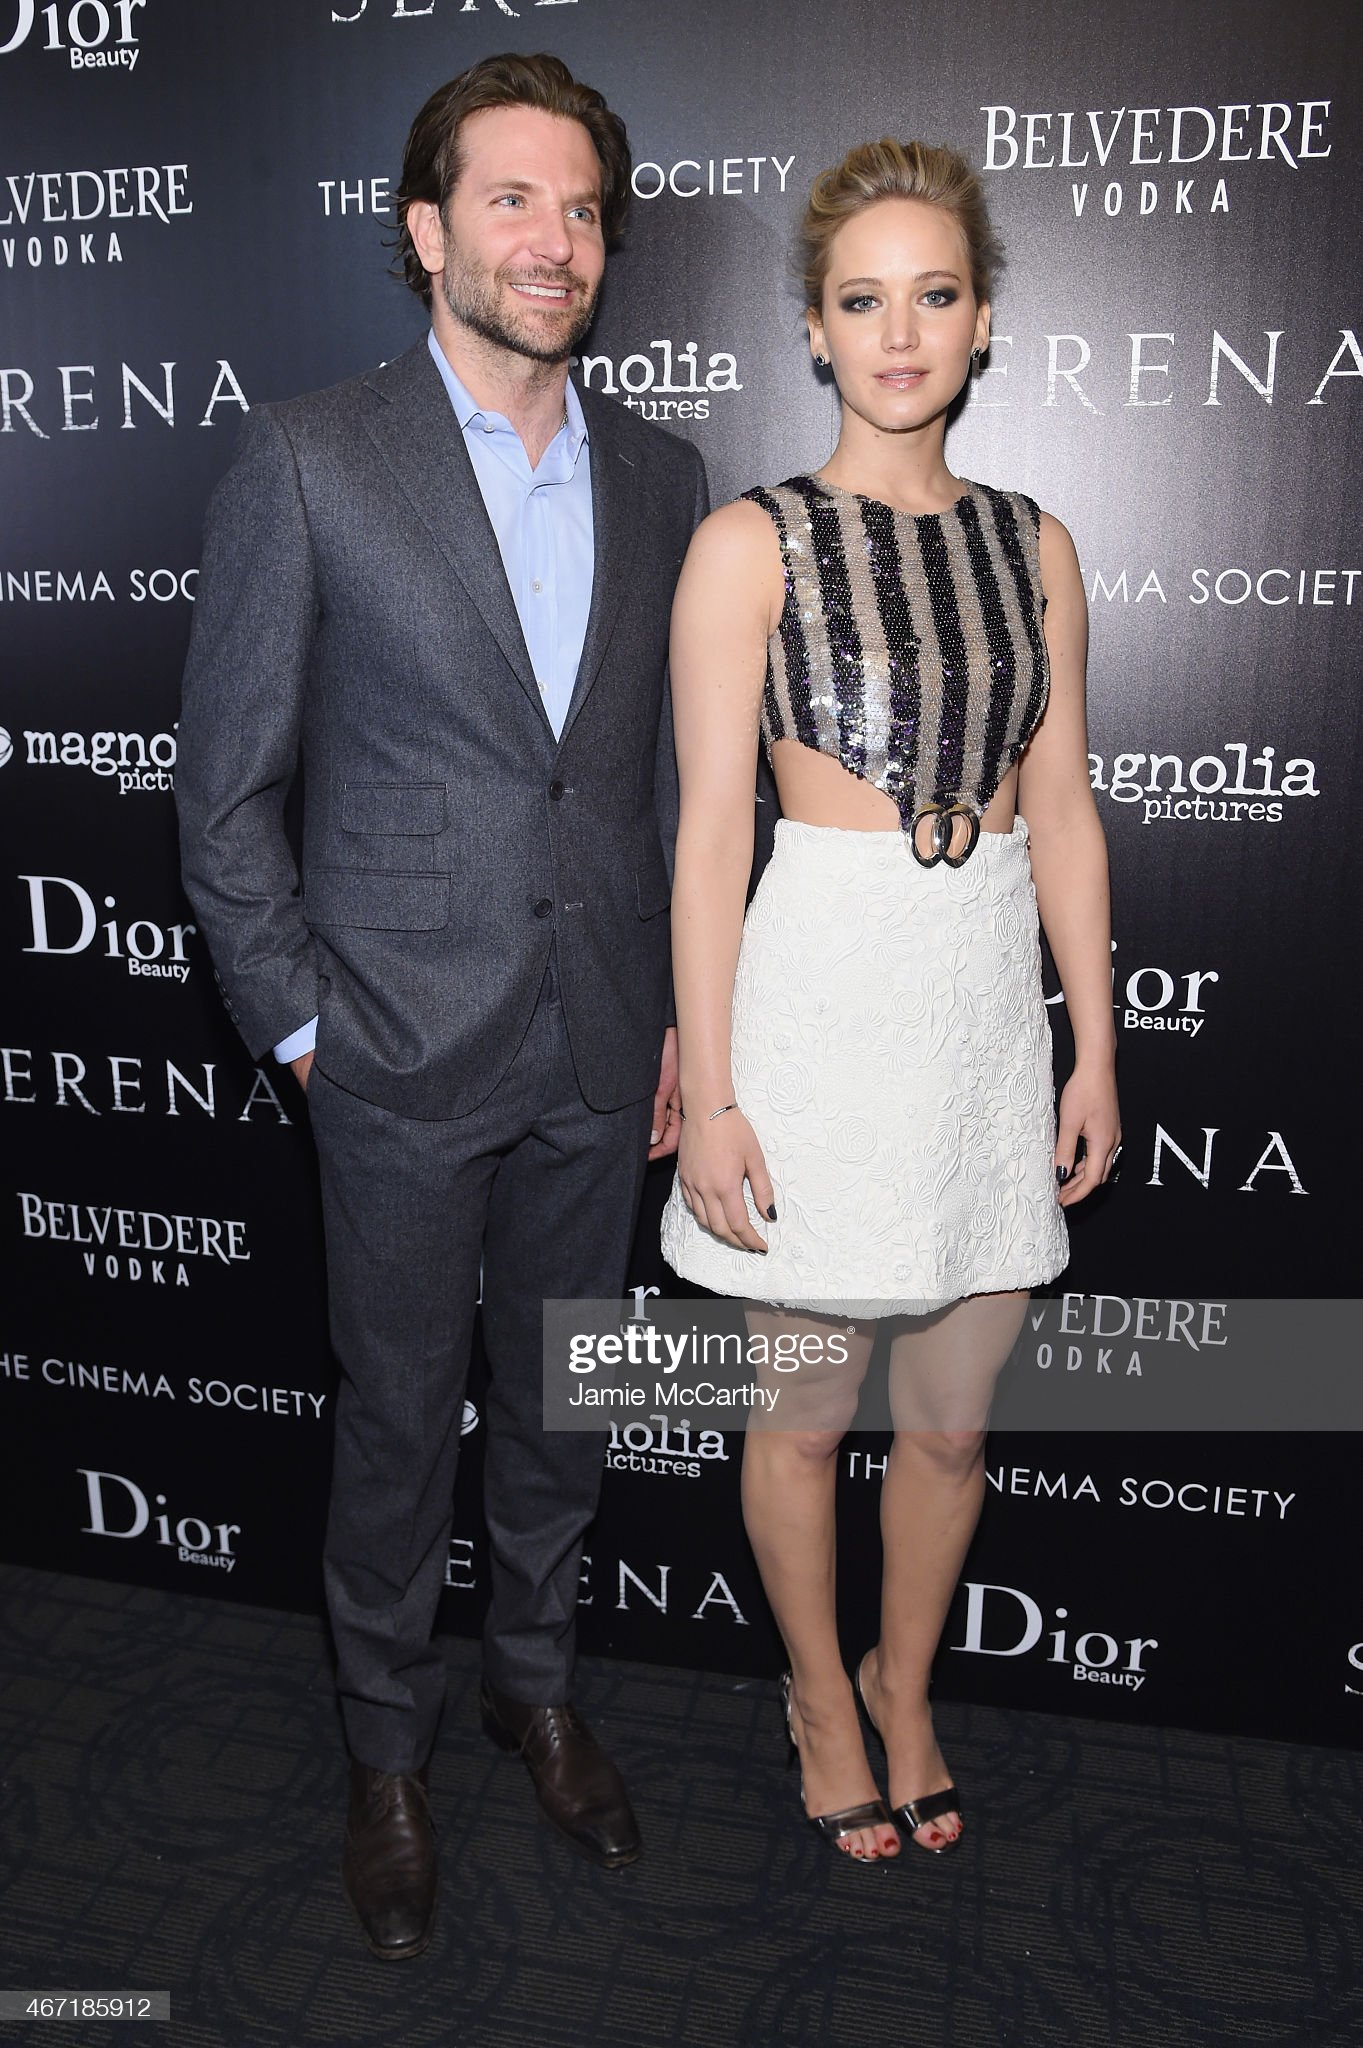 ¿Cuánto mide Jennifer Lawrence? - Altura - Real height Actors-bradley-cooper-and-jennifer-lawrence-attend-a-screening-of-picture-id467185912?s=2048x2048